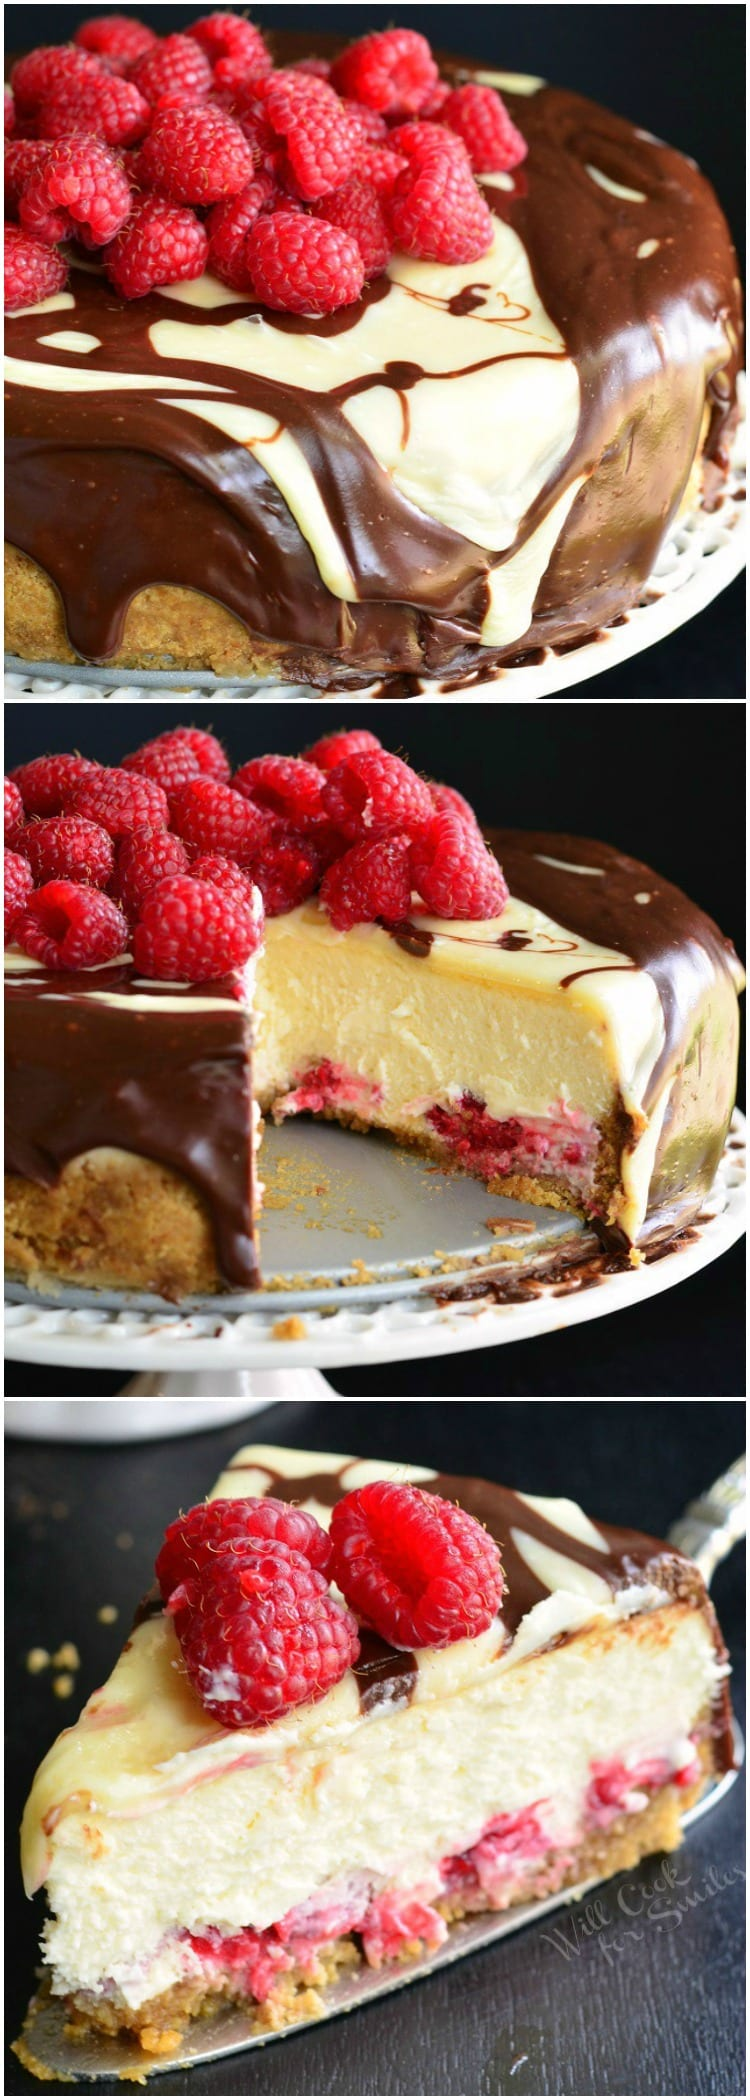 Double Chocolate Ganache And Raspberry Cheesecake Will